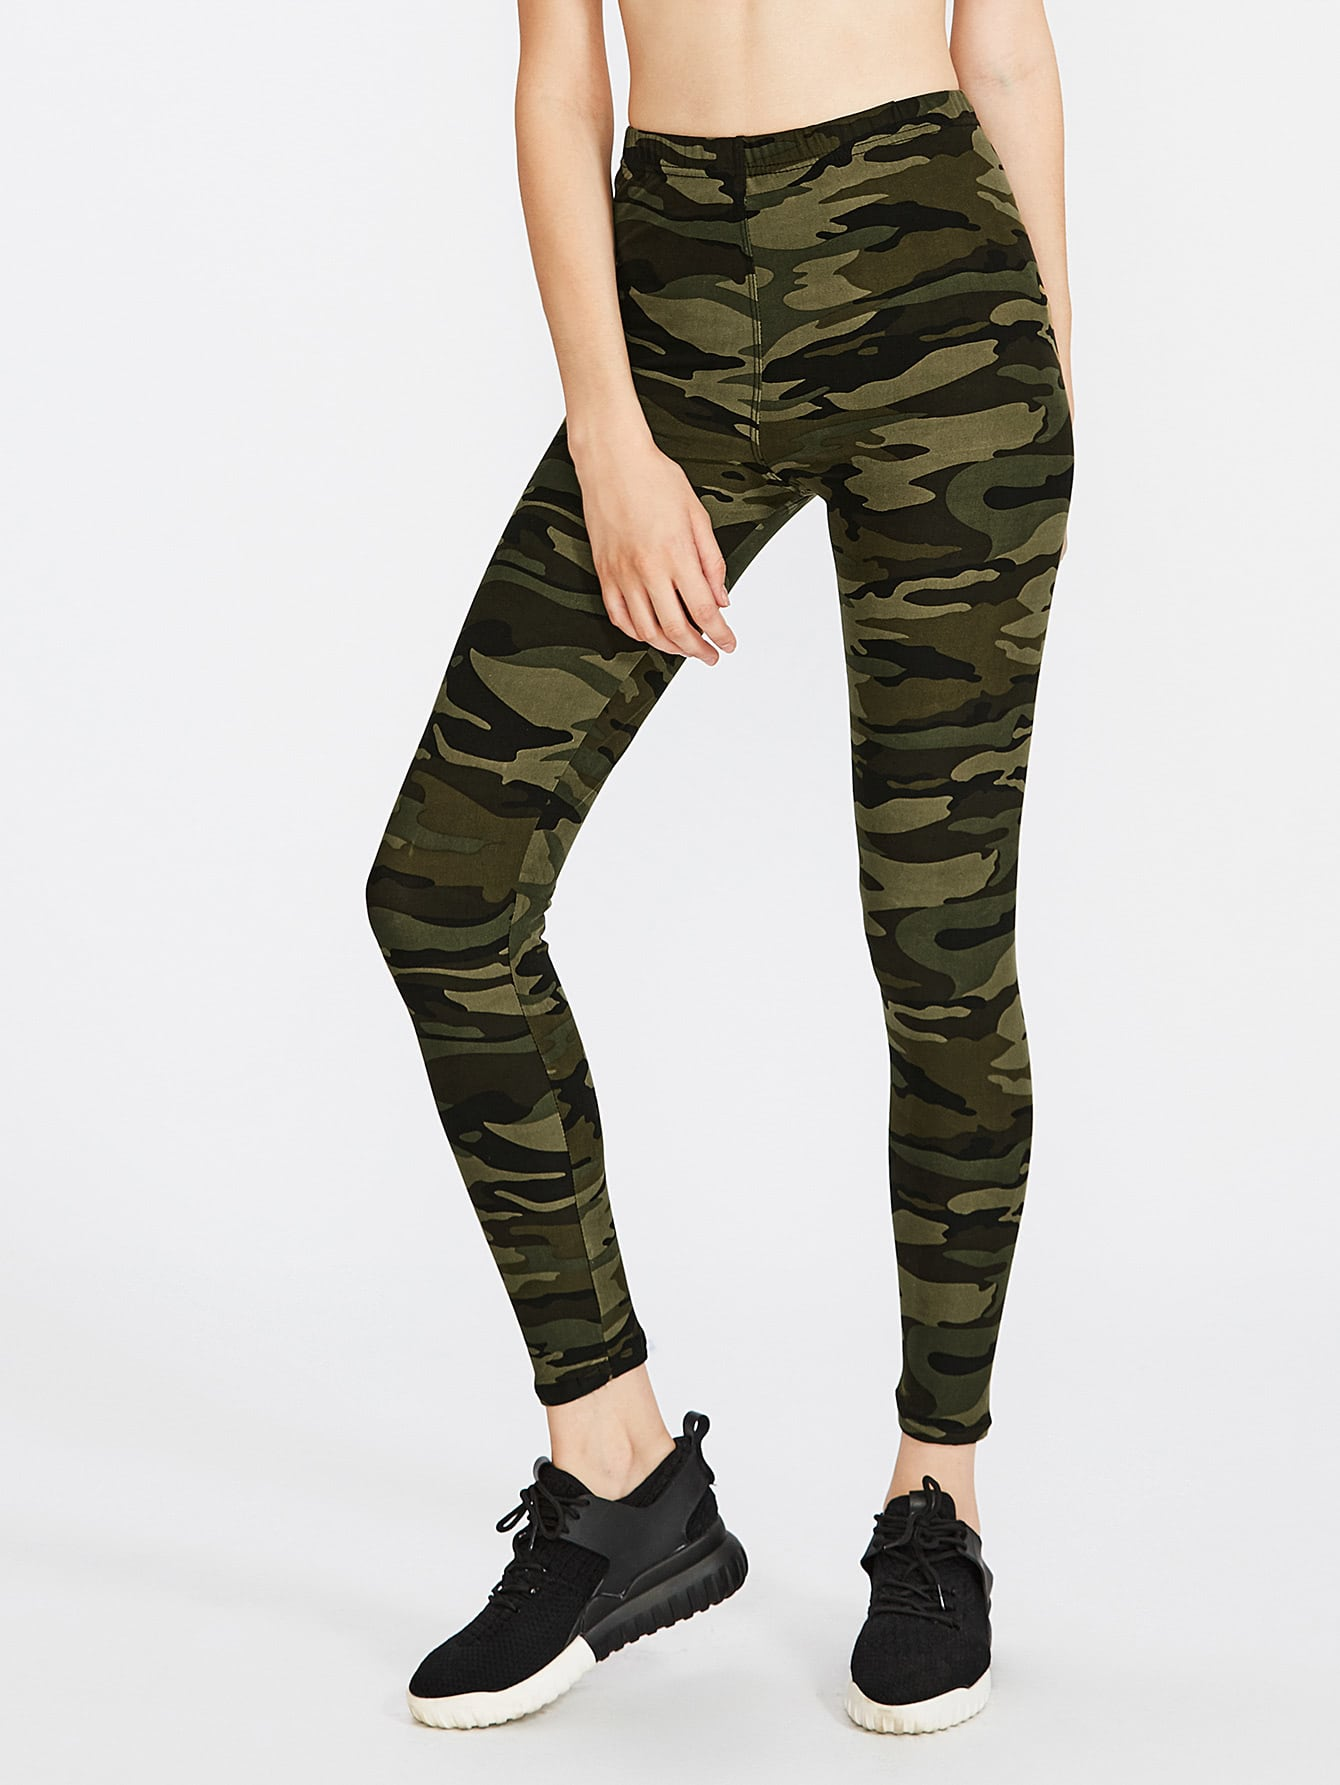 Image of Active Camo Print Legging